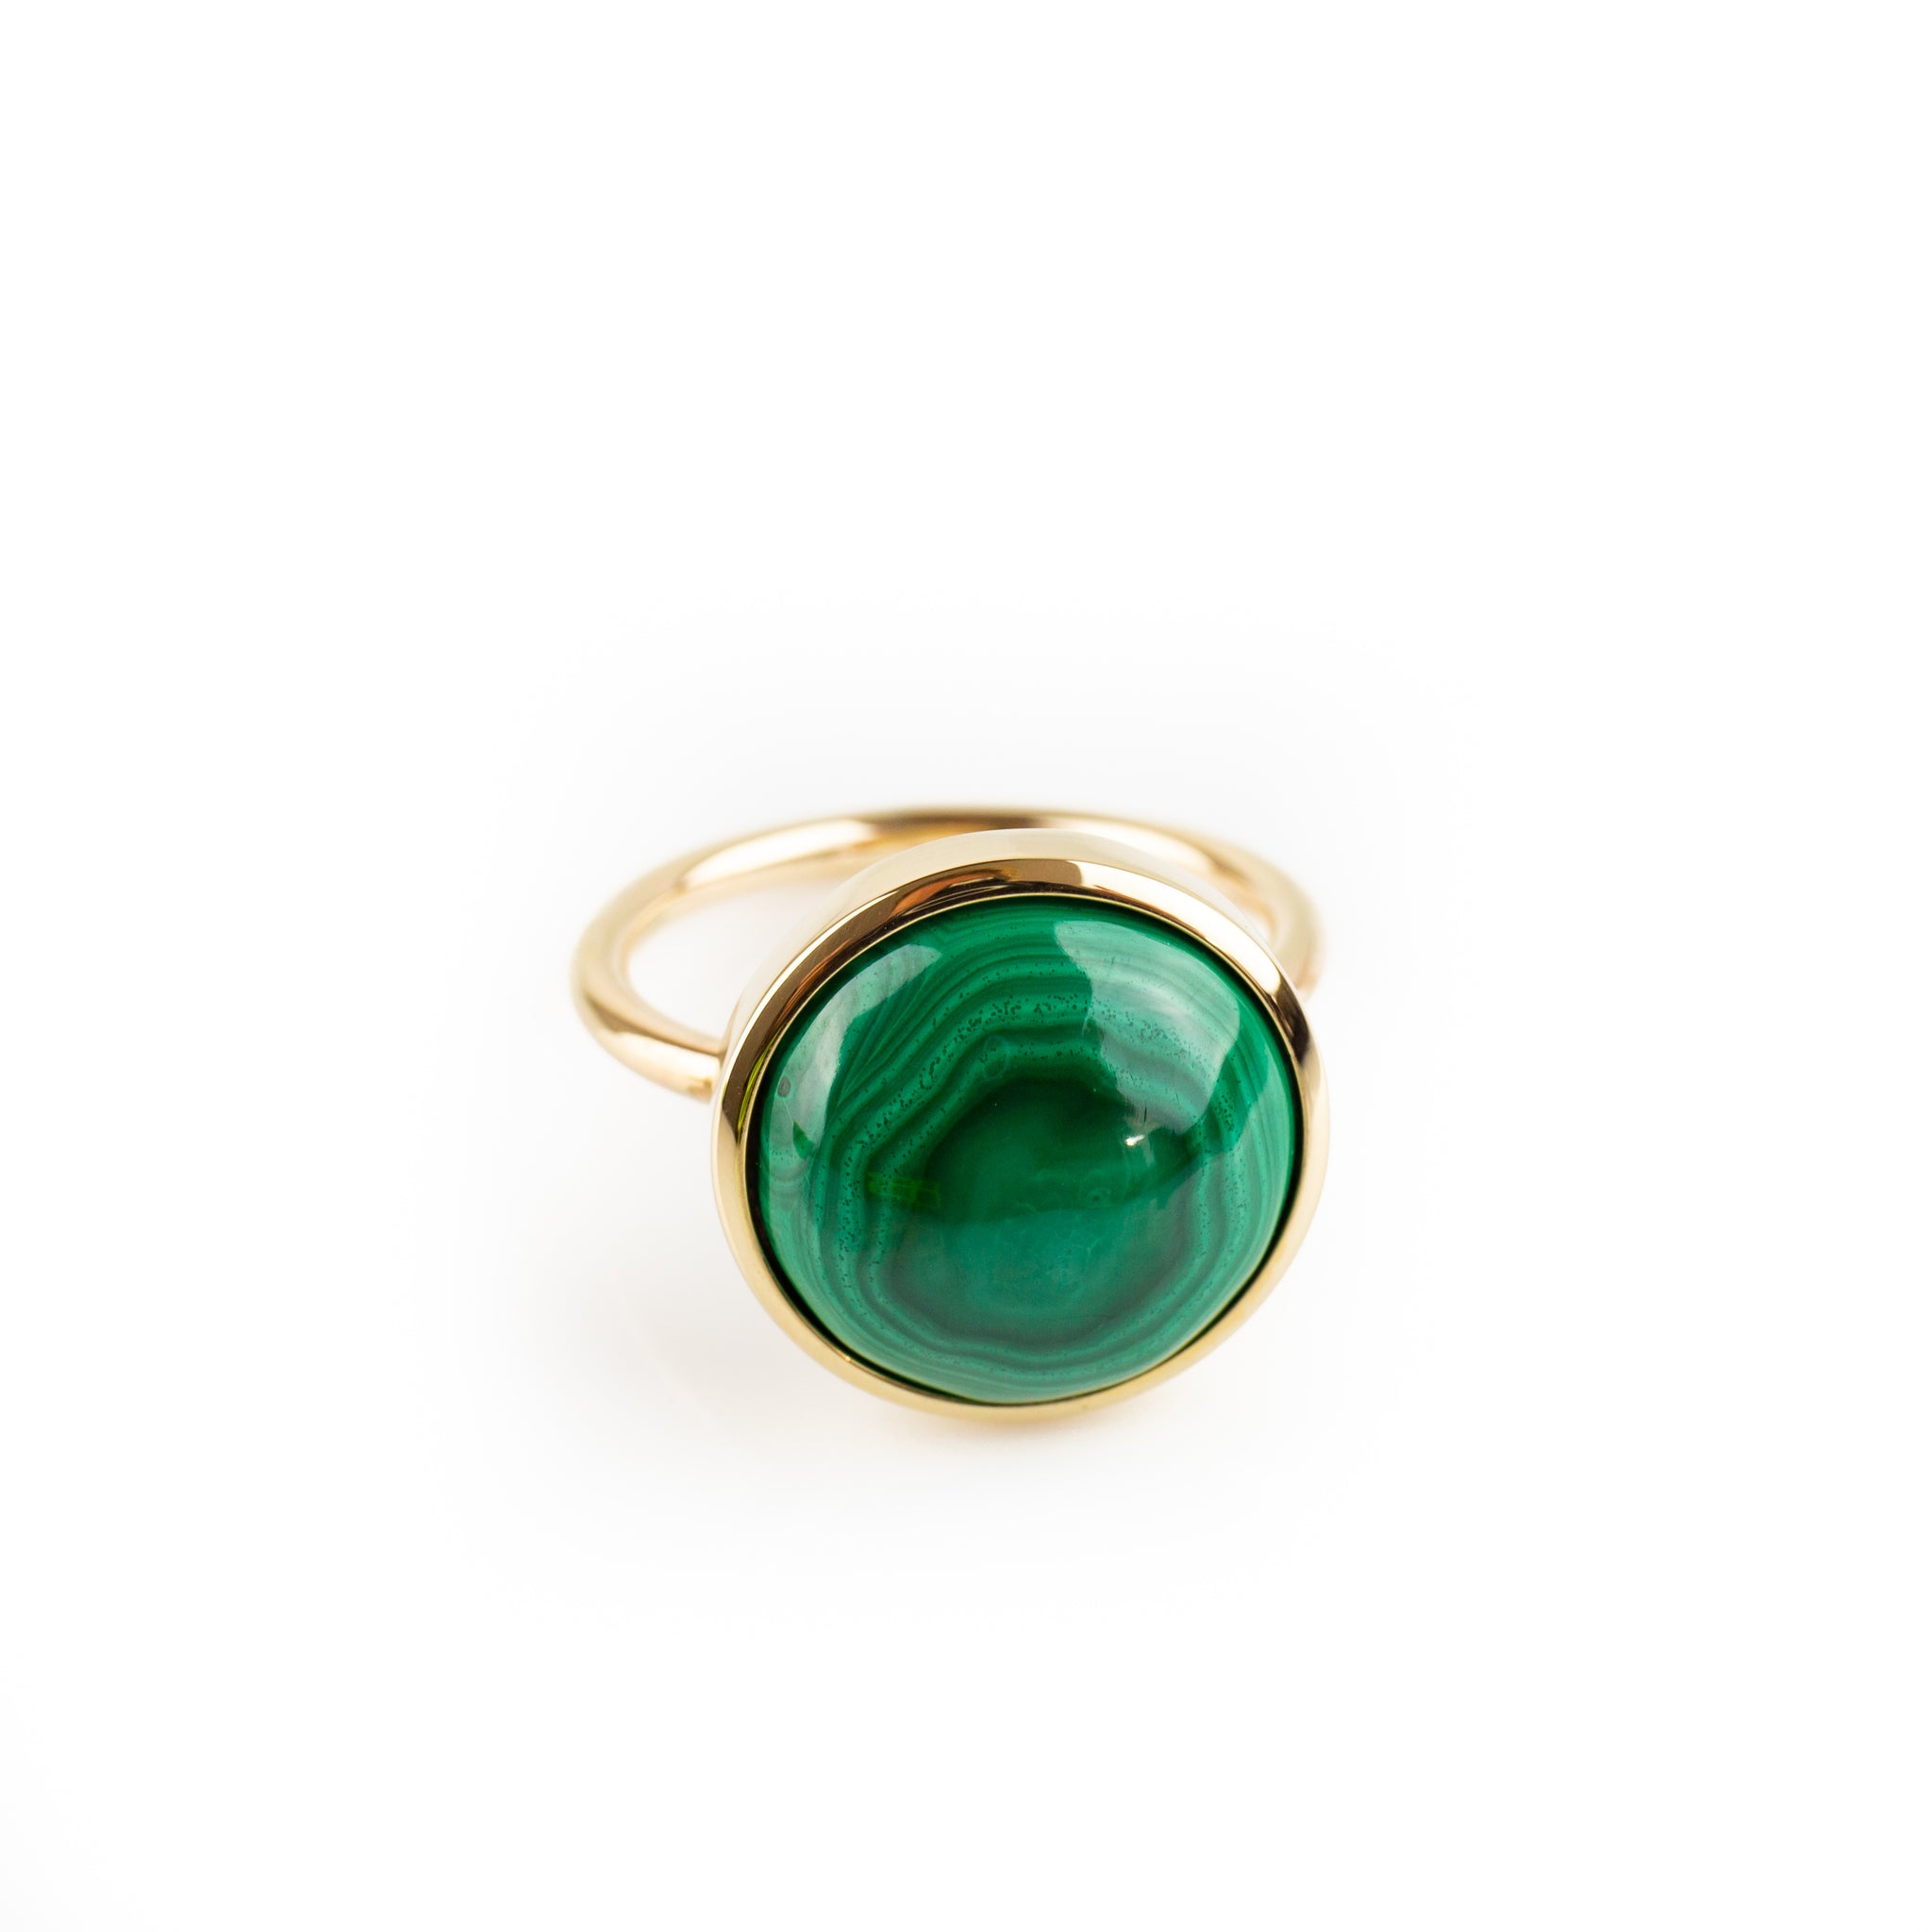 Malachite and gold ring by jewellery designer Tamahra Prowse.